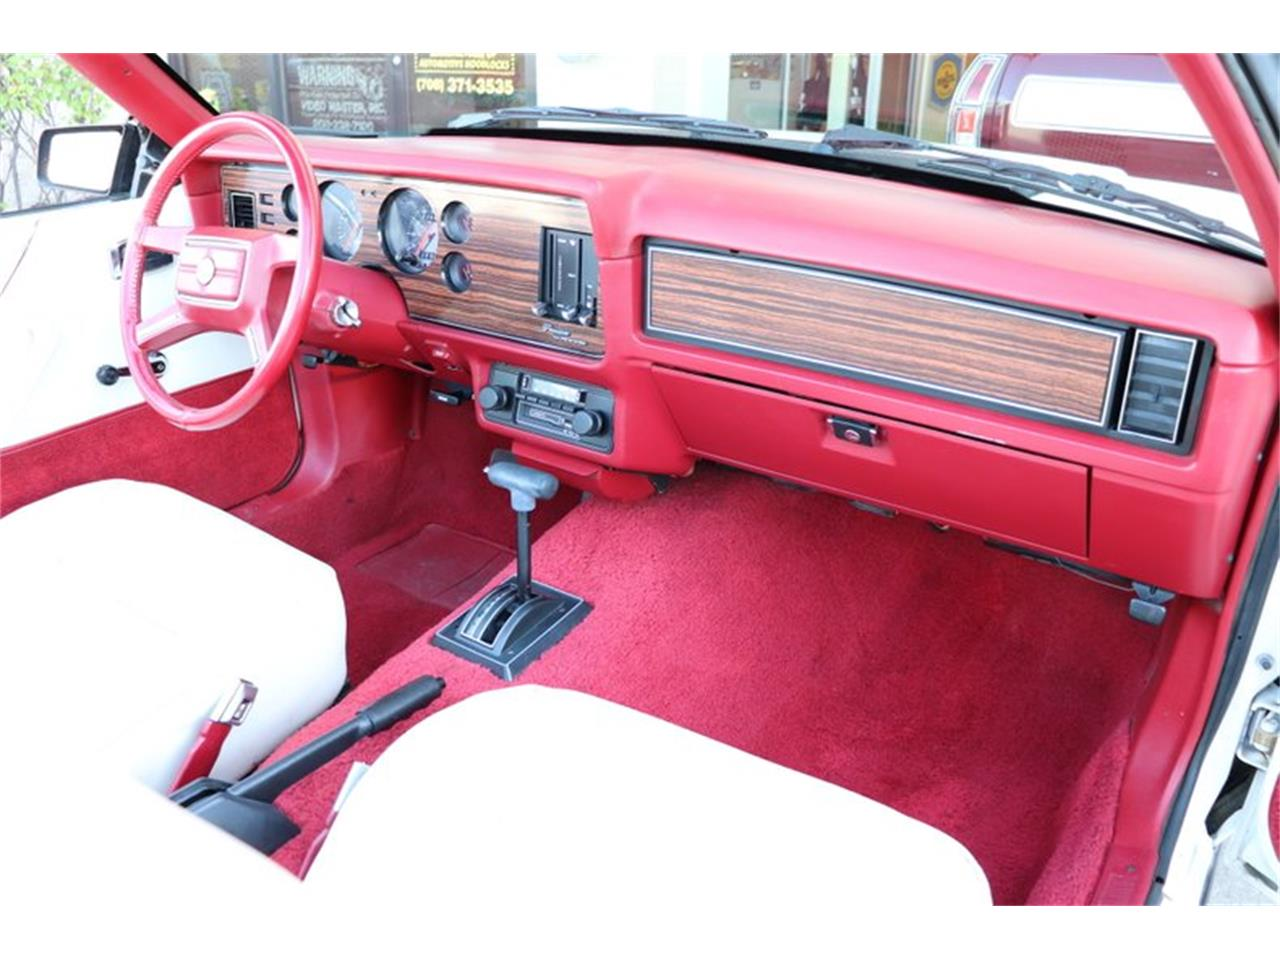 Large Picture of '83 Mustang - $7,900.00 - OHLI